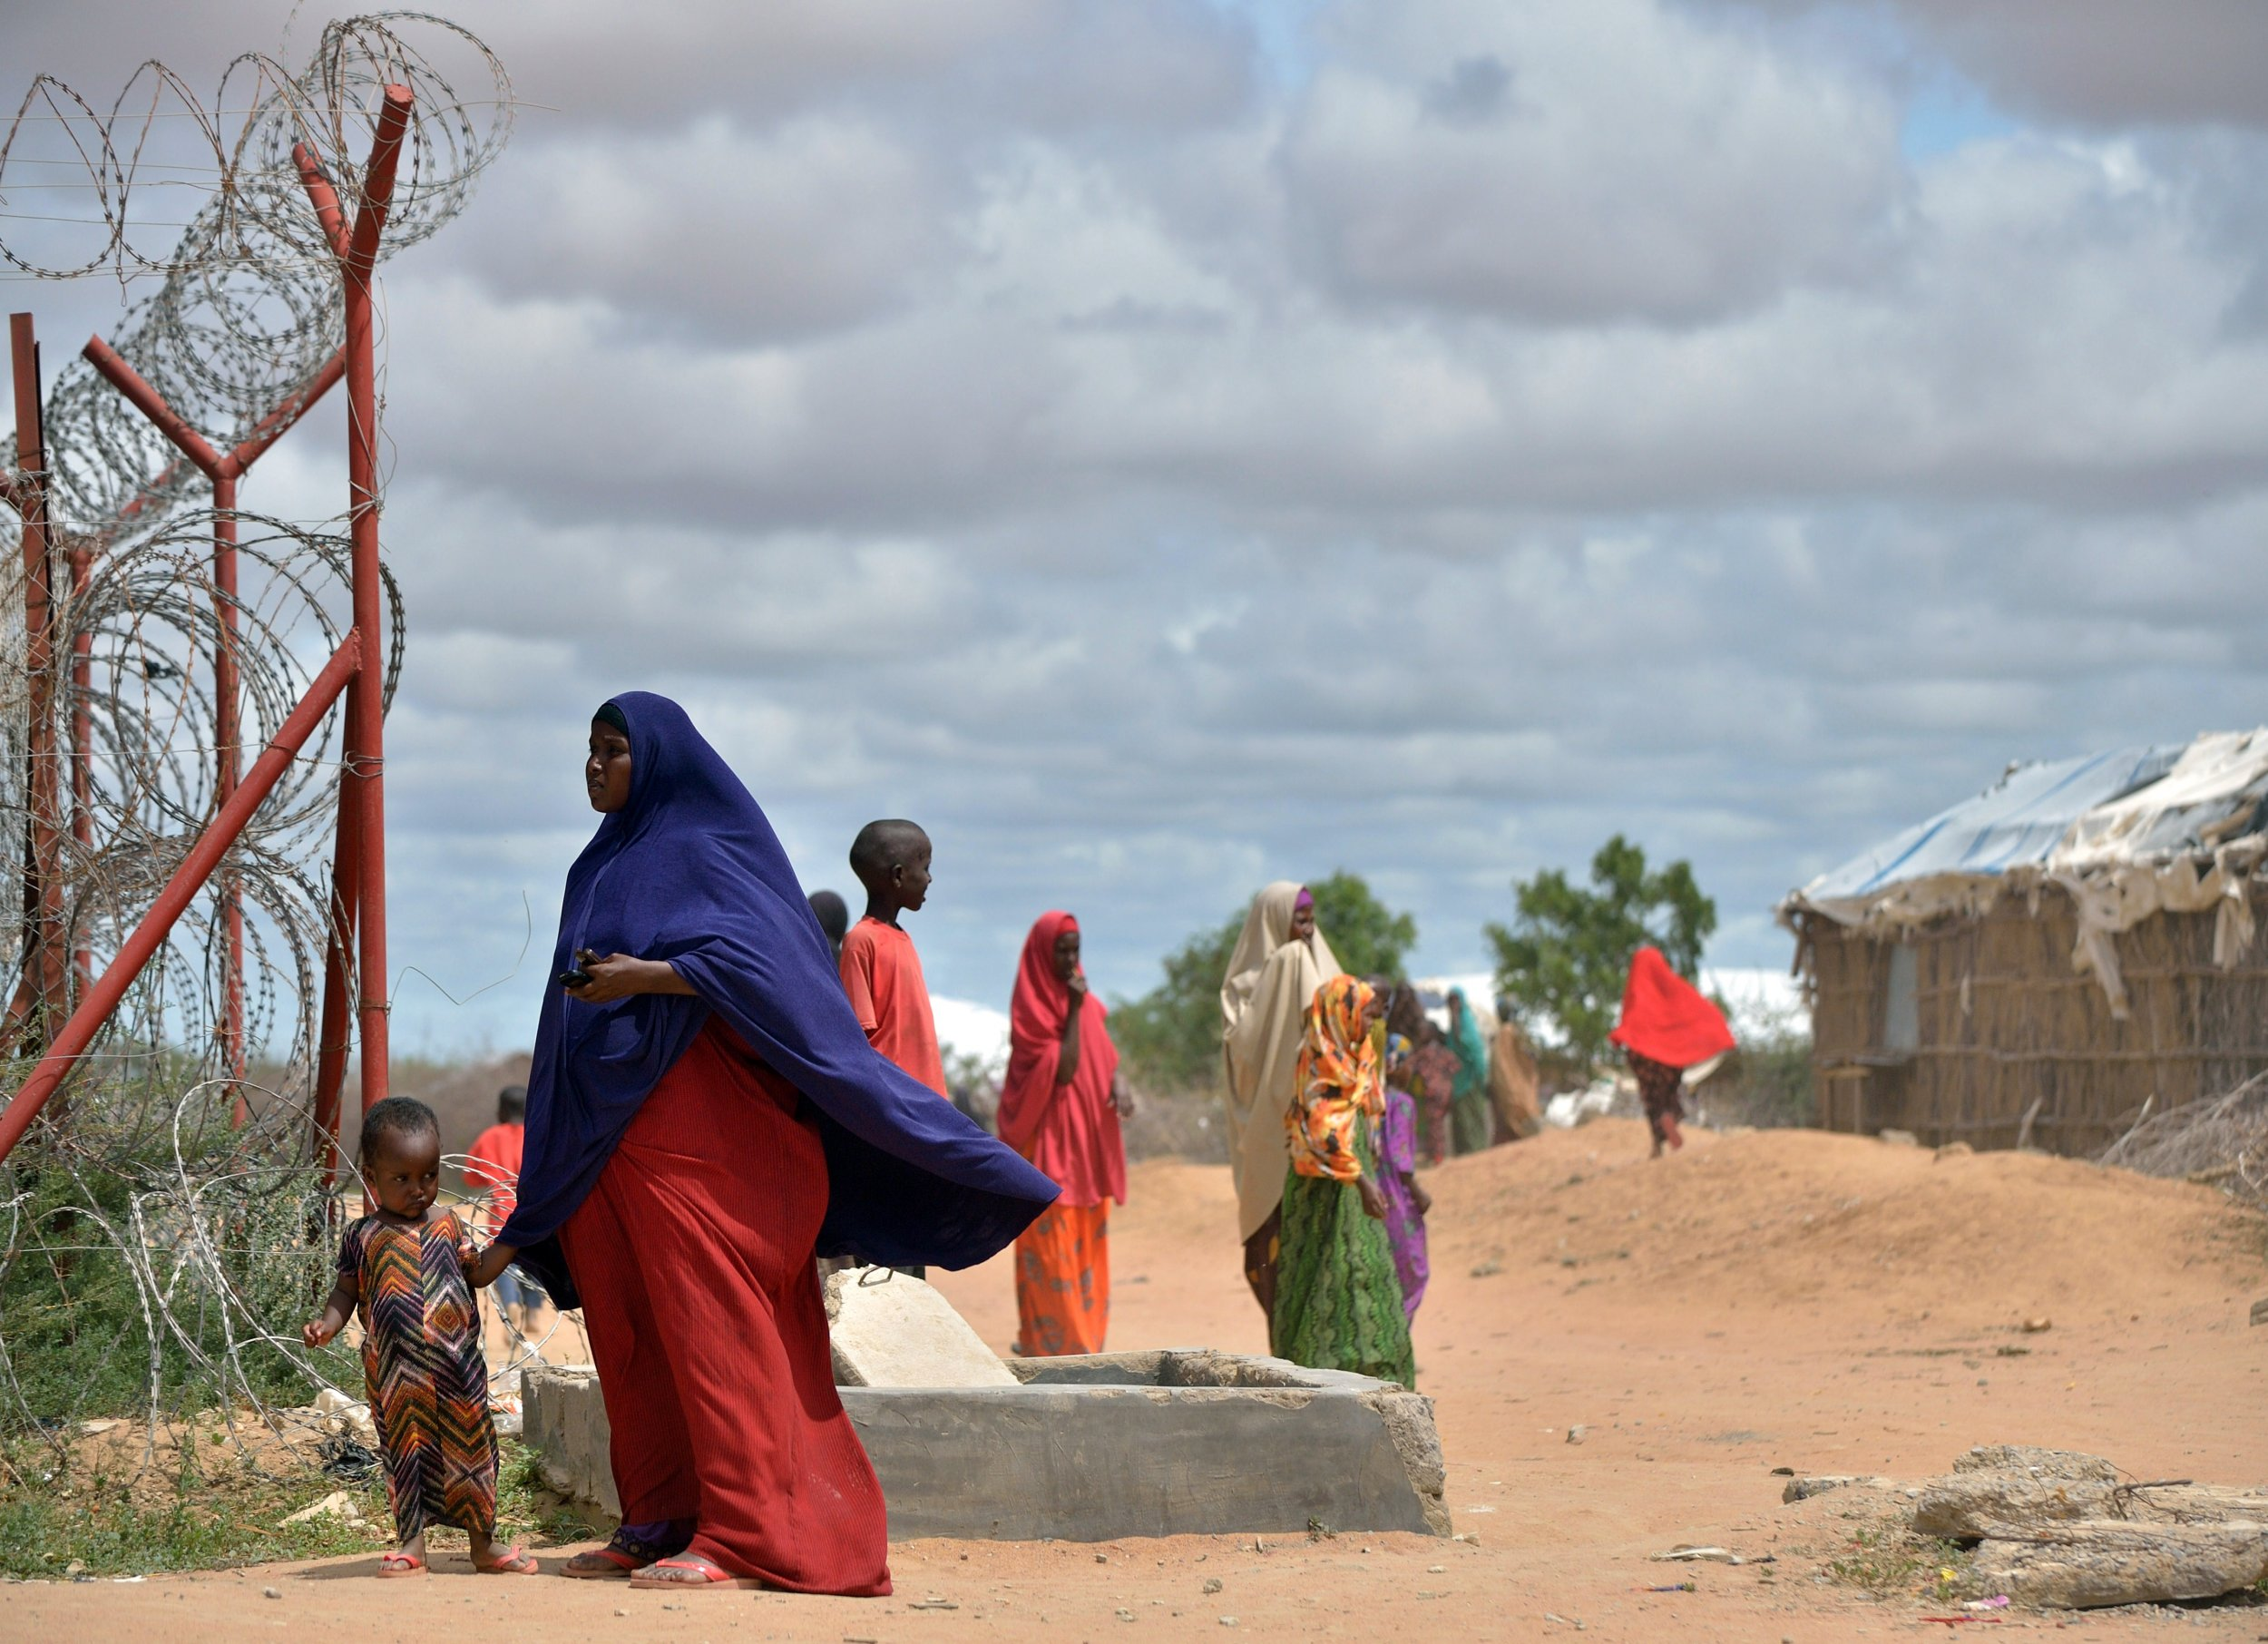 Refugees in Dadaab